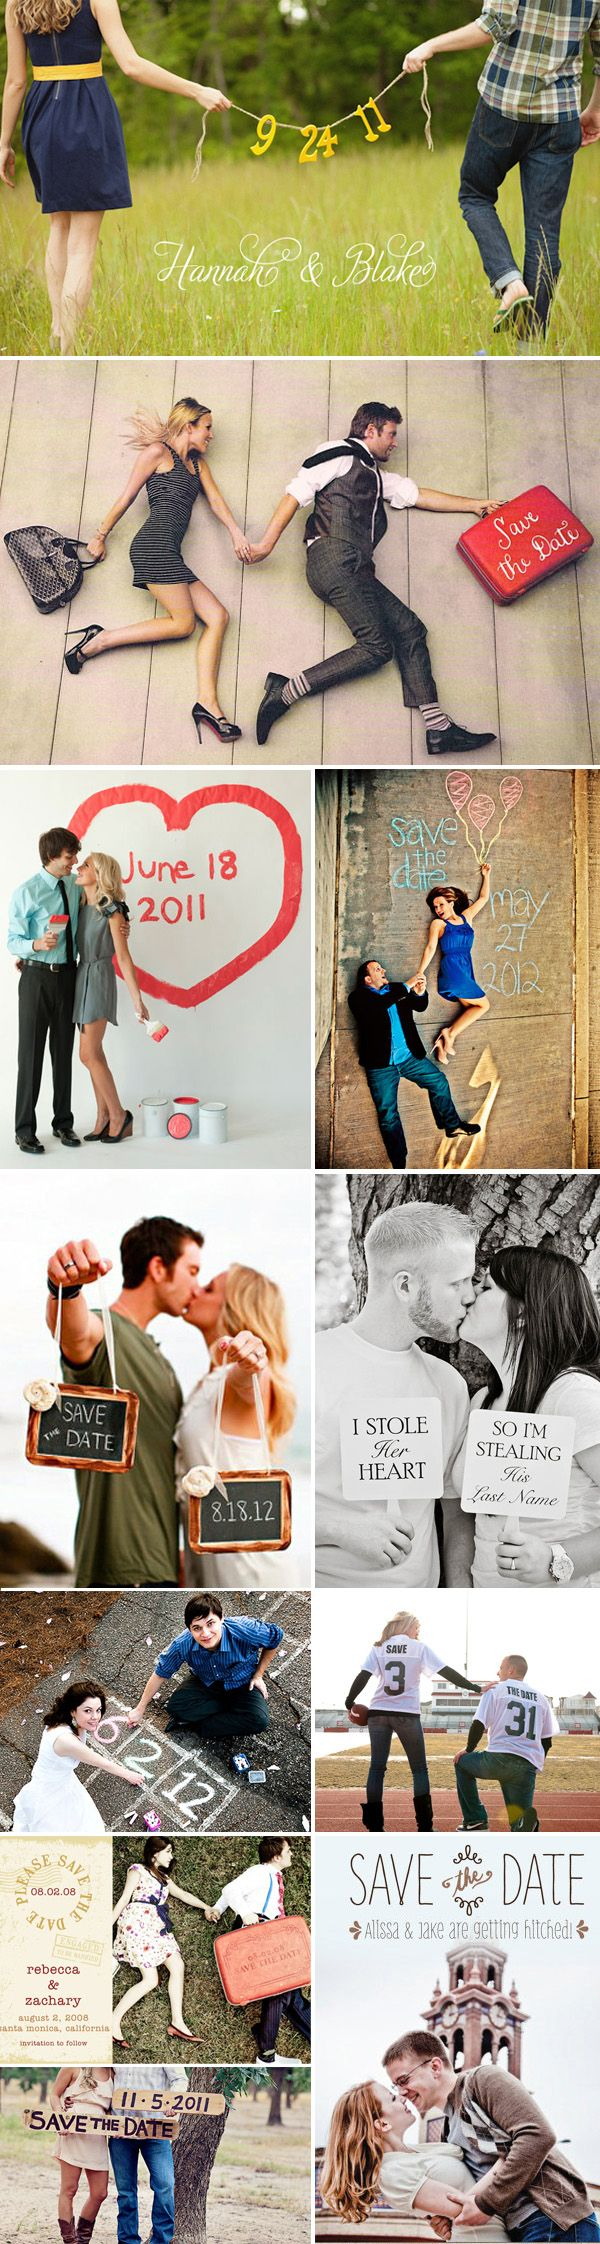 funnny and unique wedding save the date ideas